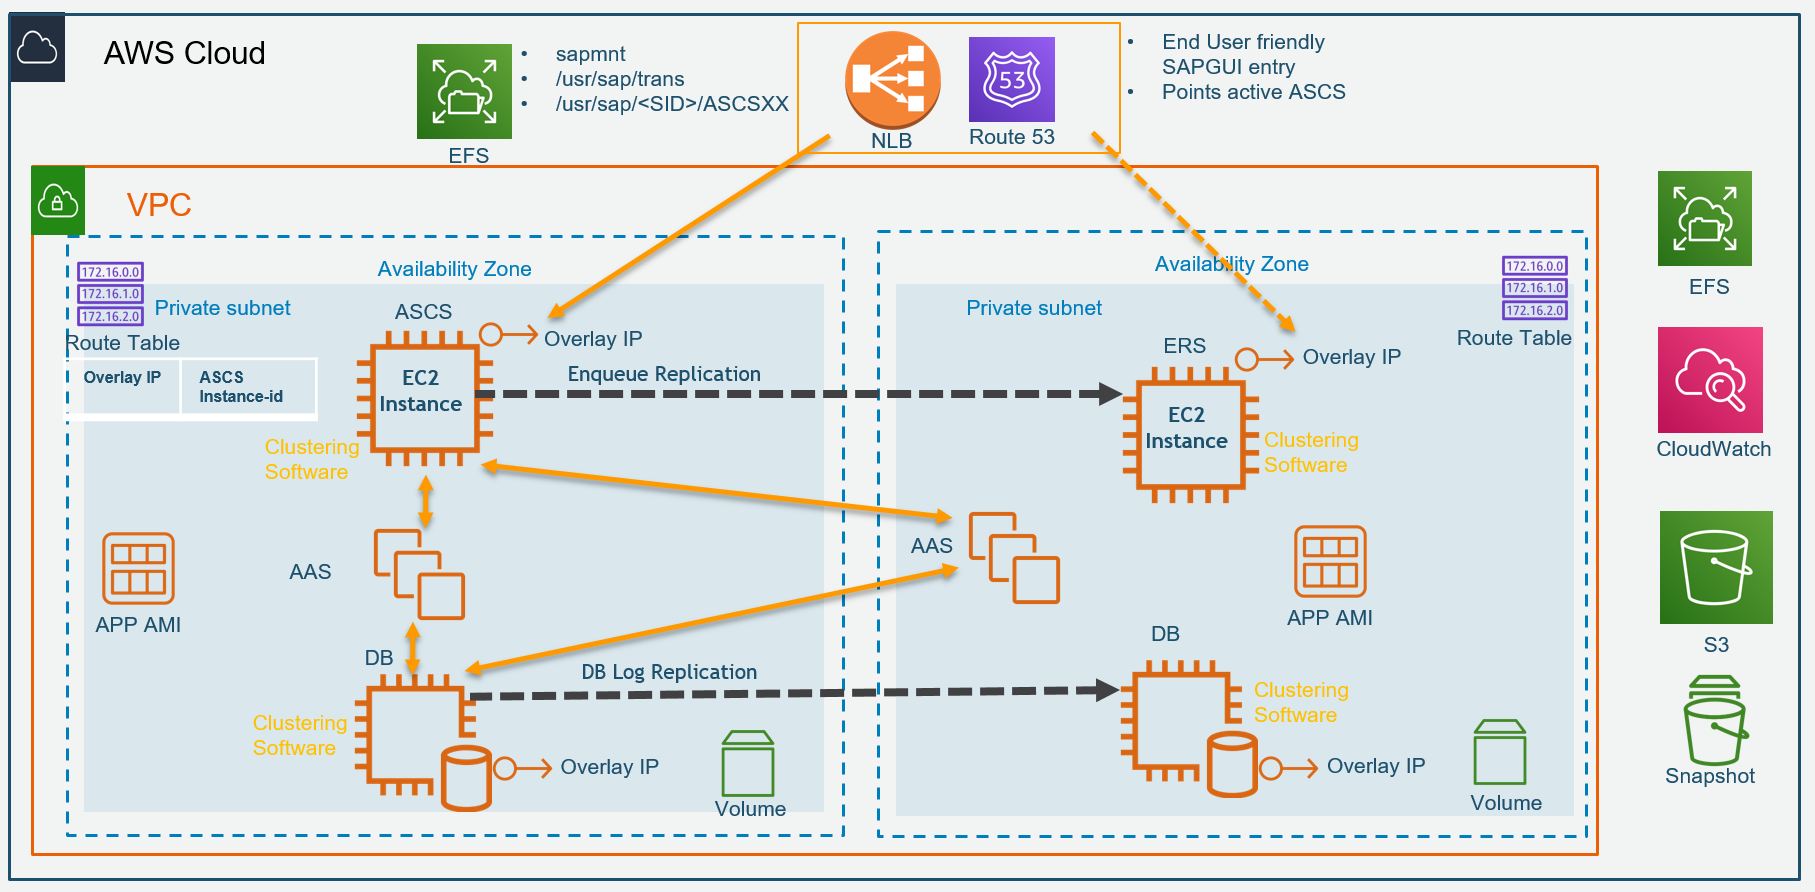 HA Overview for SAP on AWS